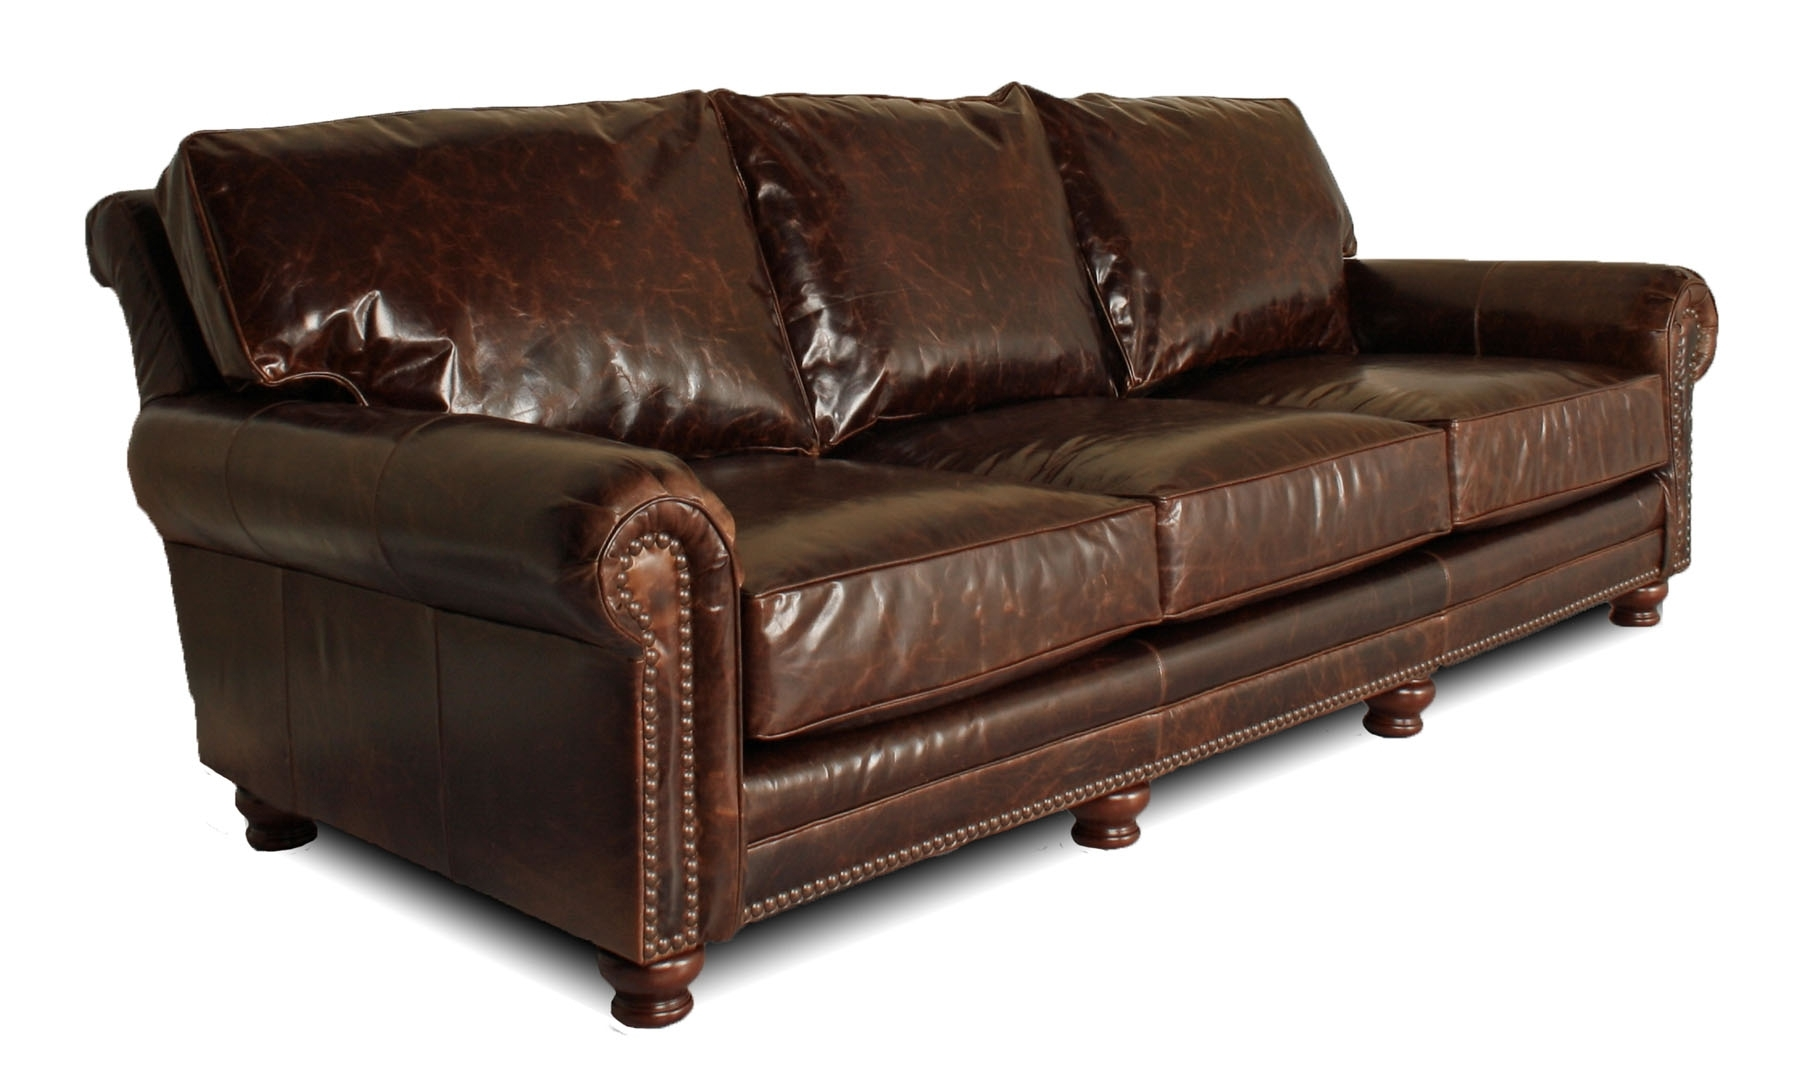 Deep Leather Furniture For The Big & Tall, Atlanta, Austin,chicago With Regard To Most Popular Kingston Sectional Sofas (View 3 of 15)